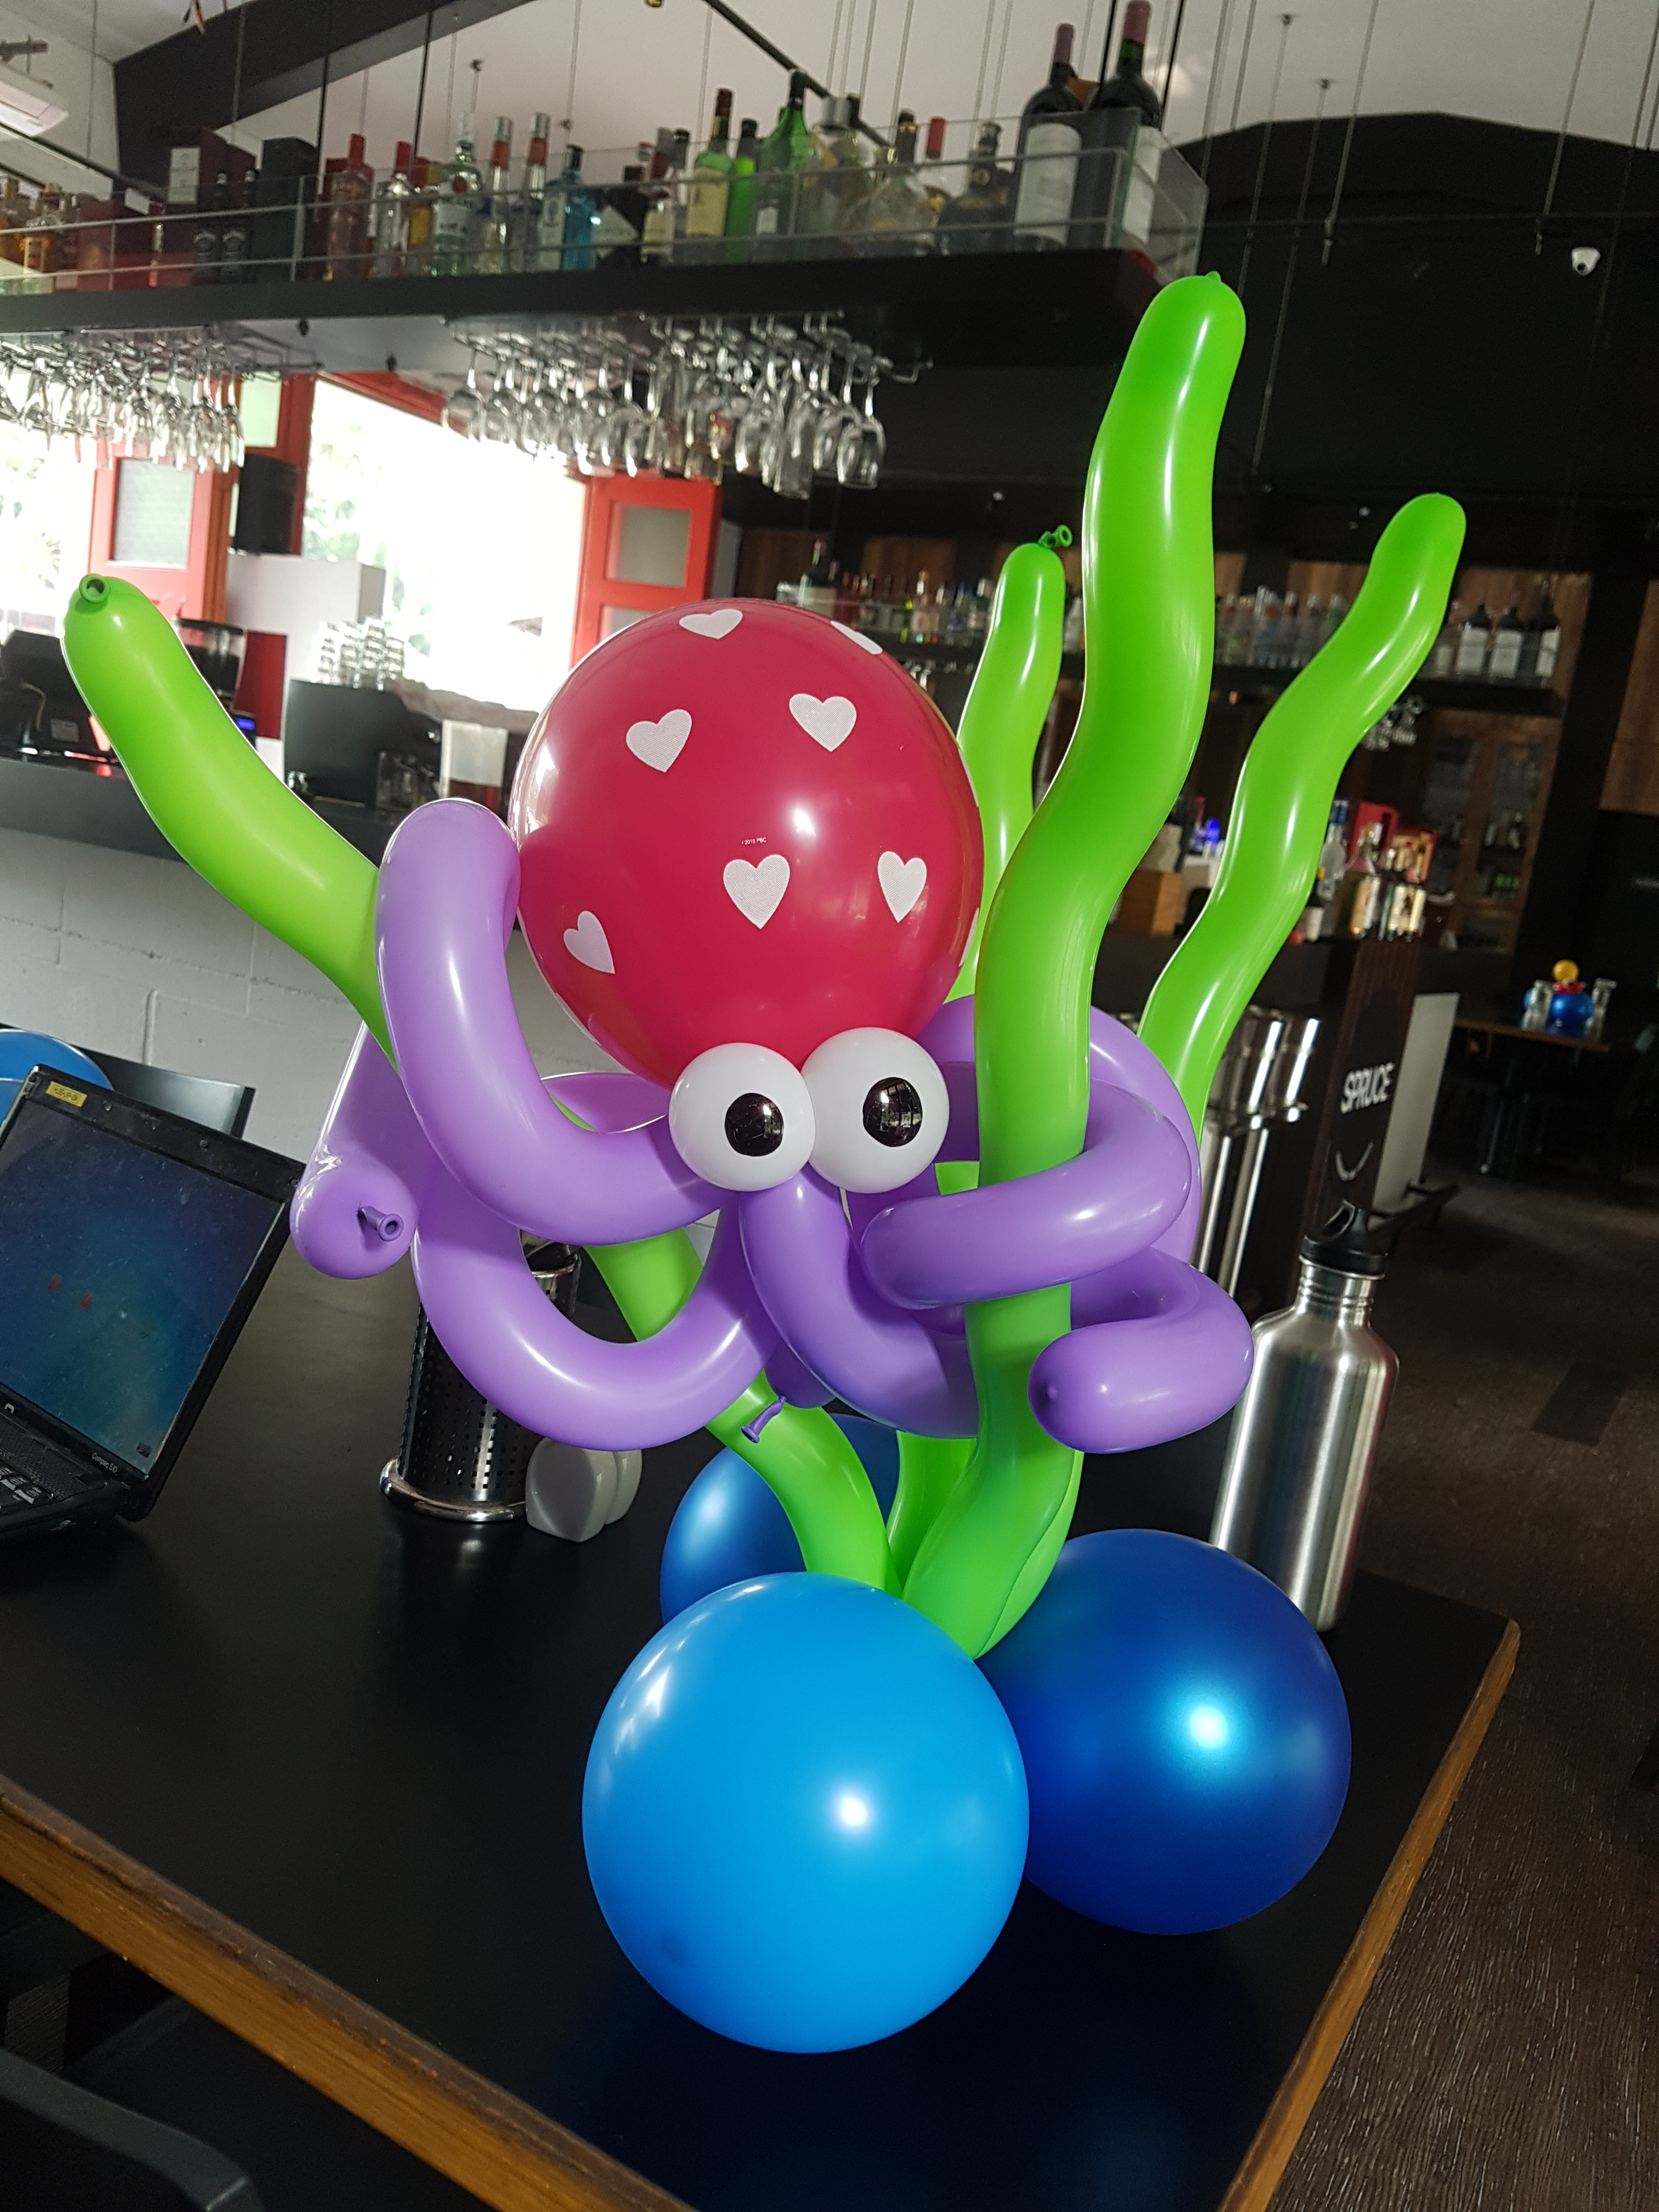 , Underwater theme balloon centrepiece decorations for PartyMojo!, Singapore Balloon Decoration Services - Balloon Workshop and Balloon Sculpting